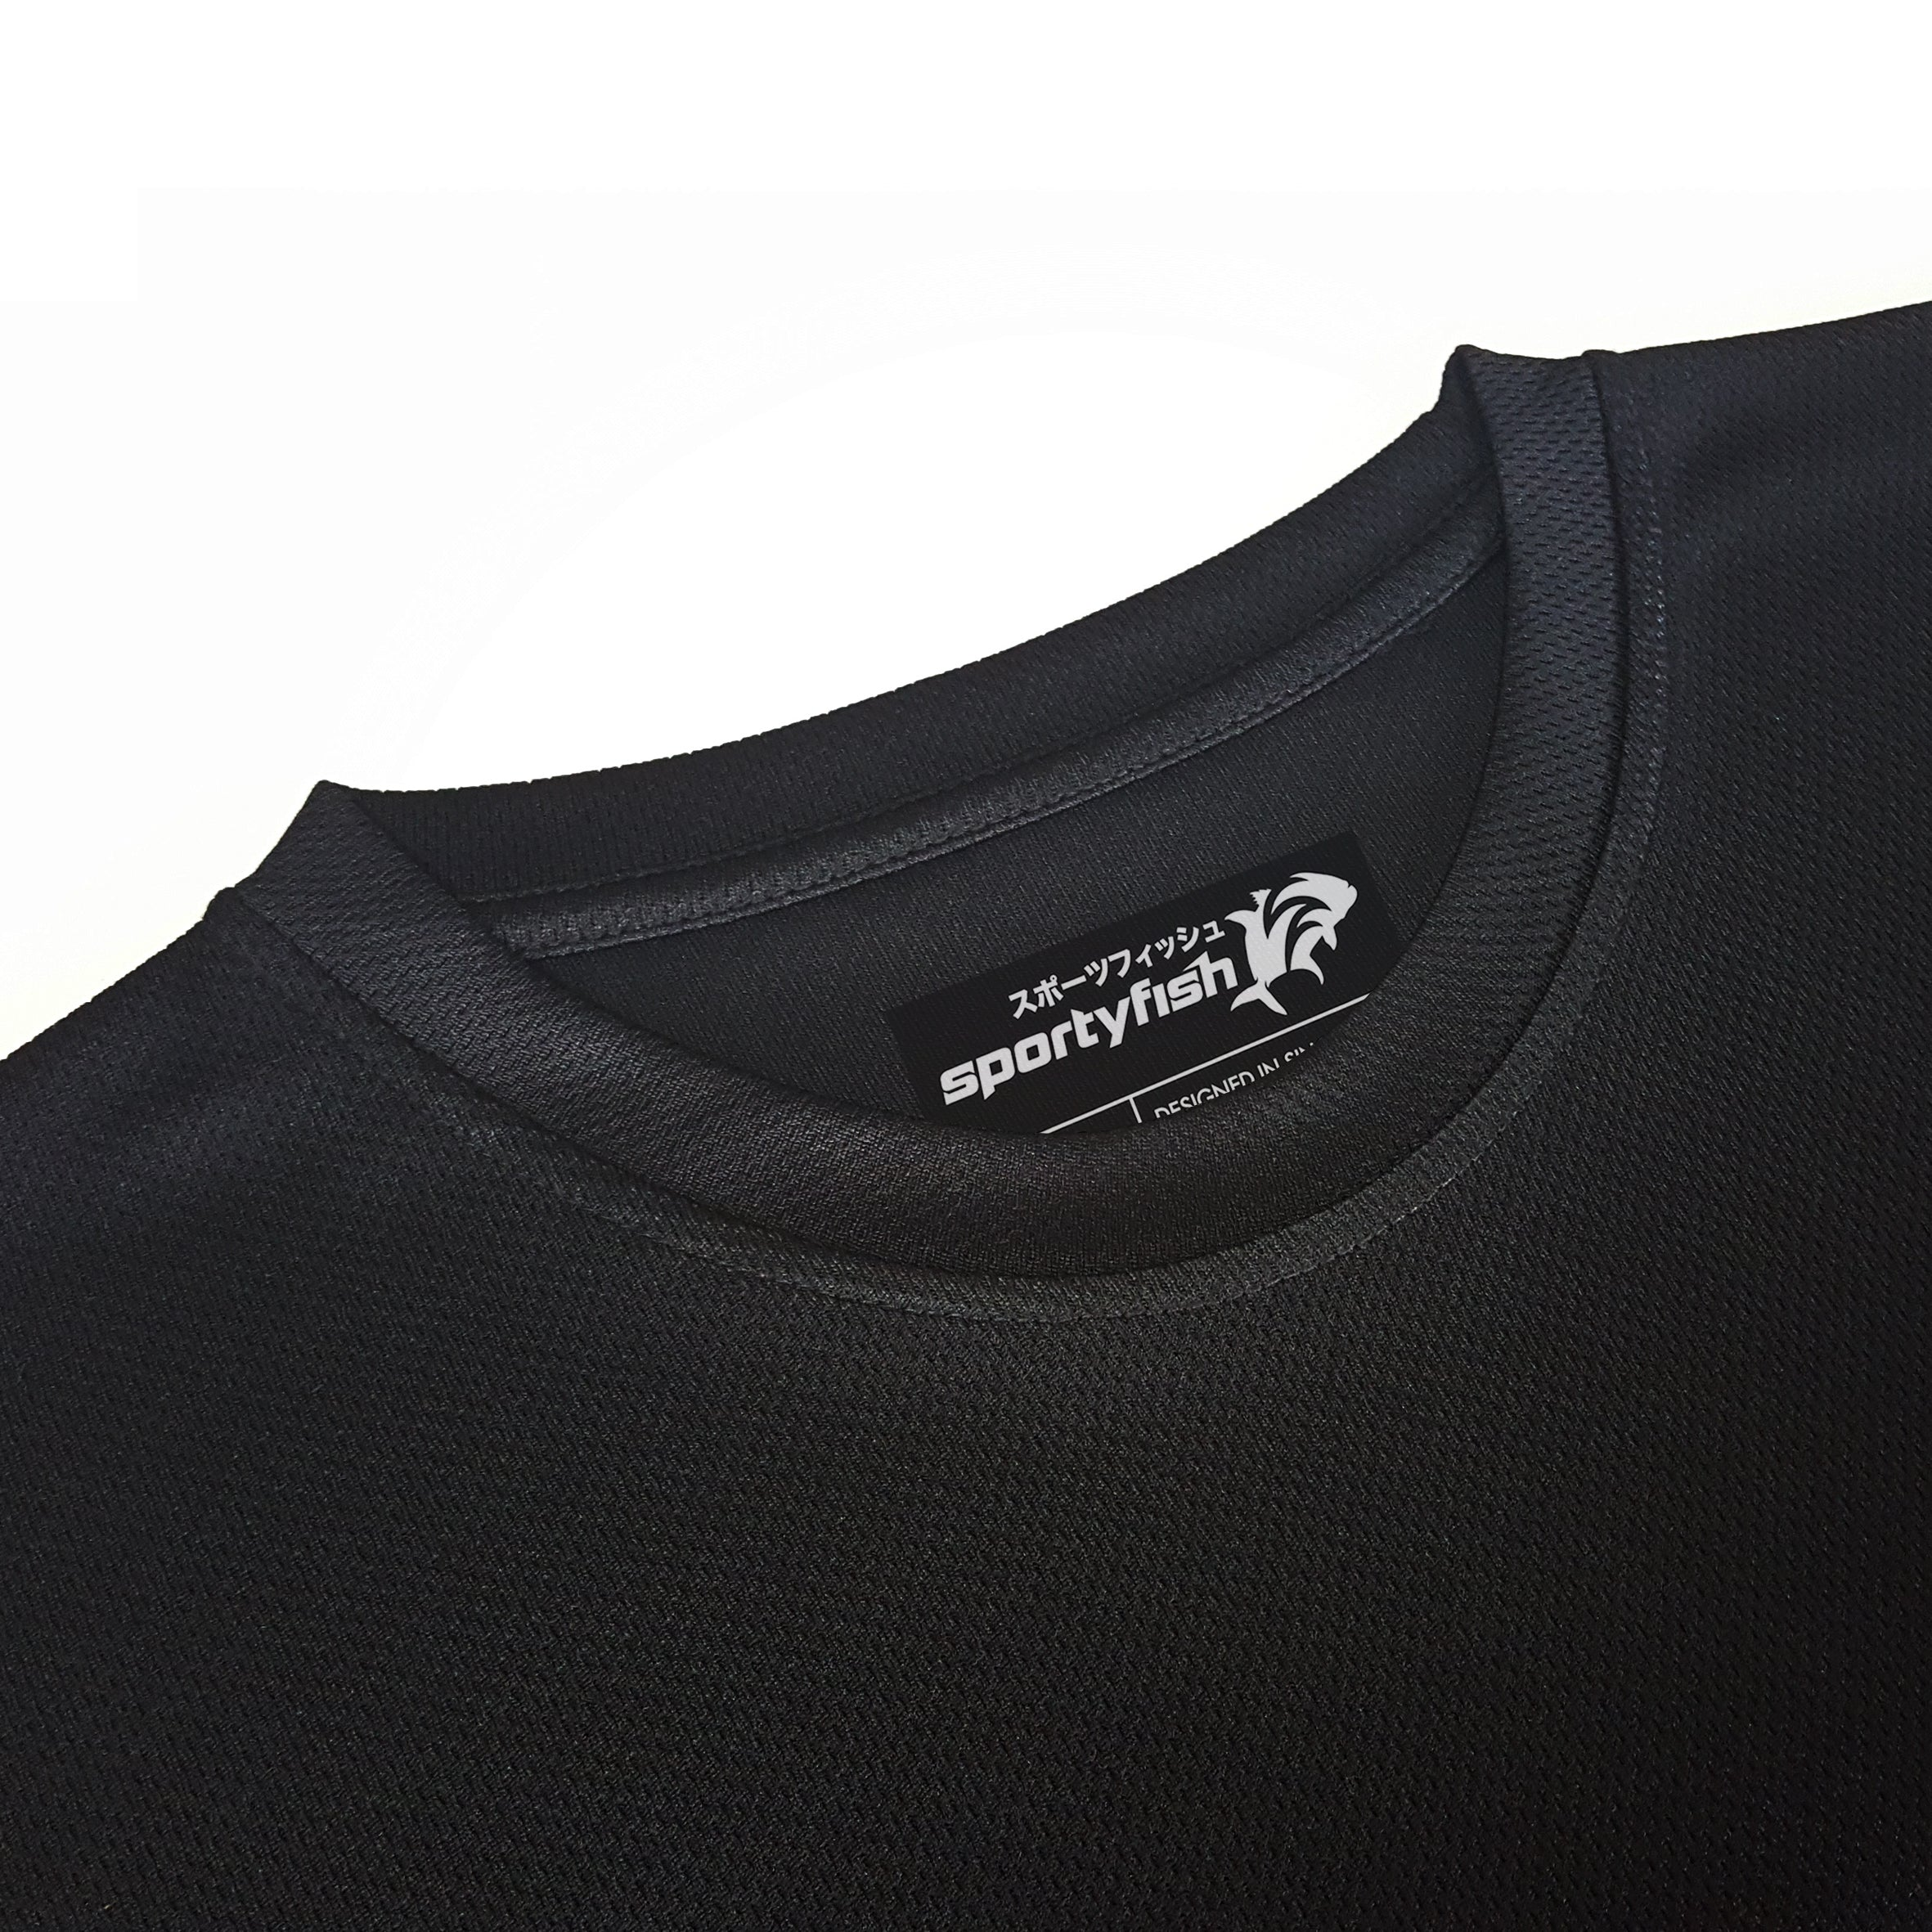 The Fin(Long-sleeves)